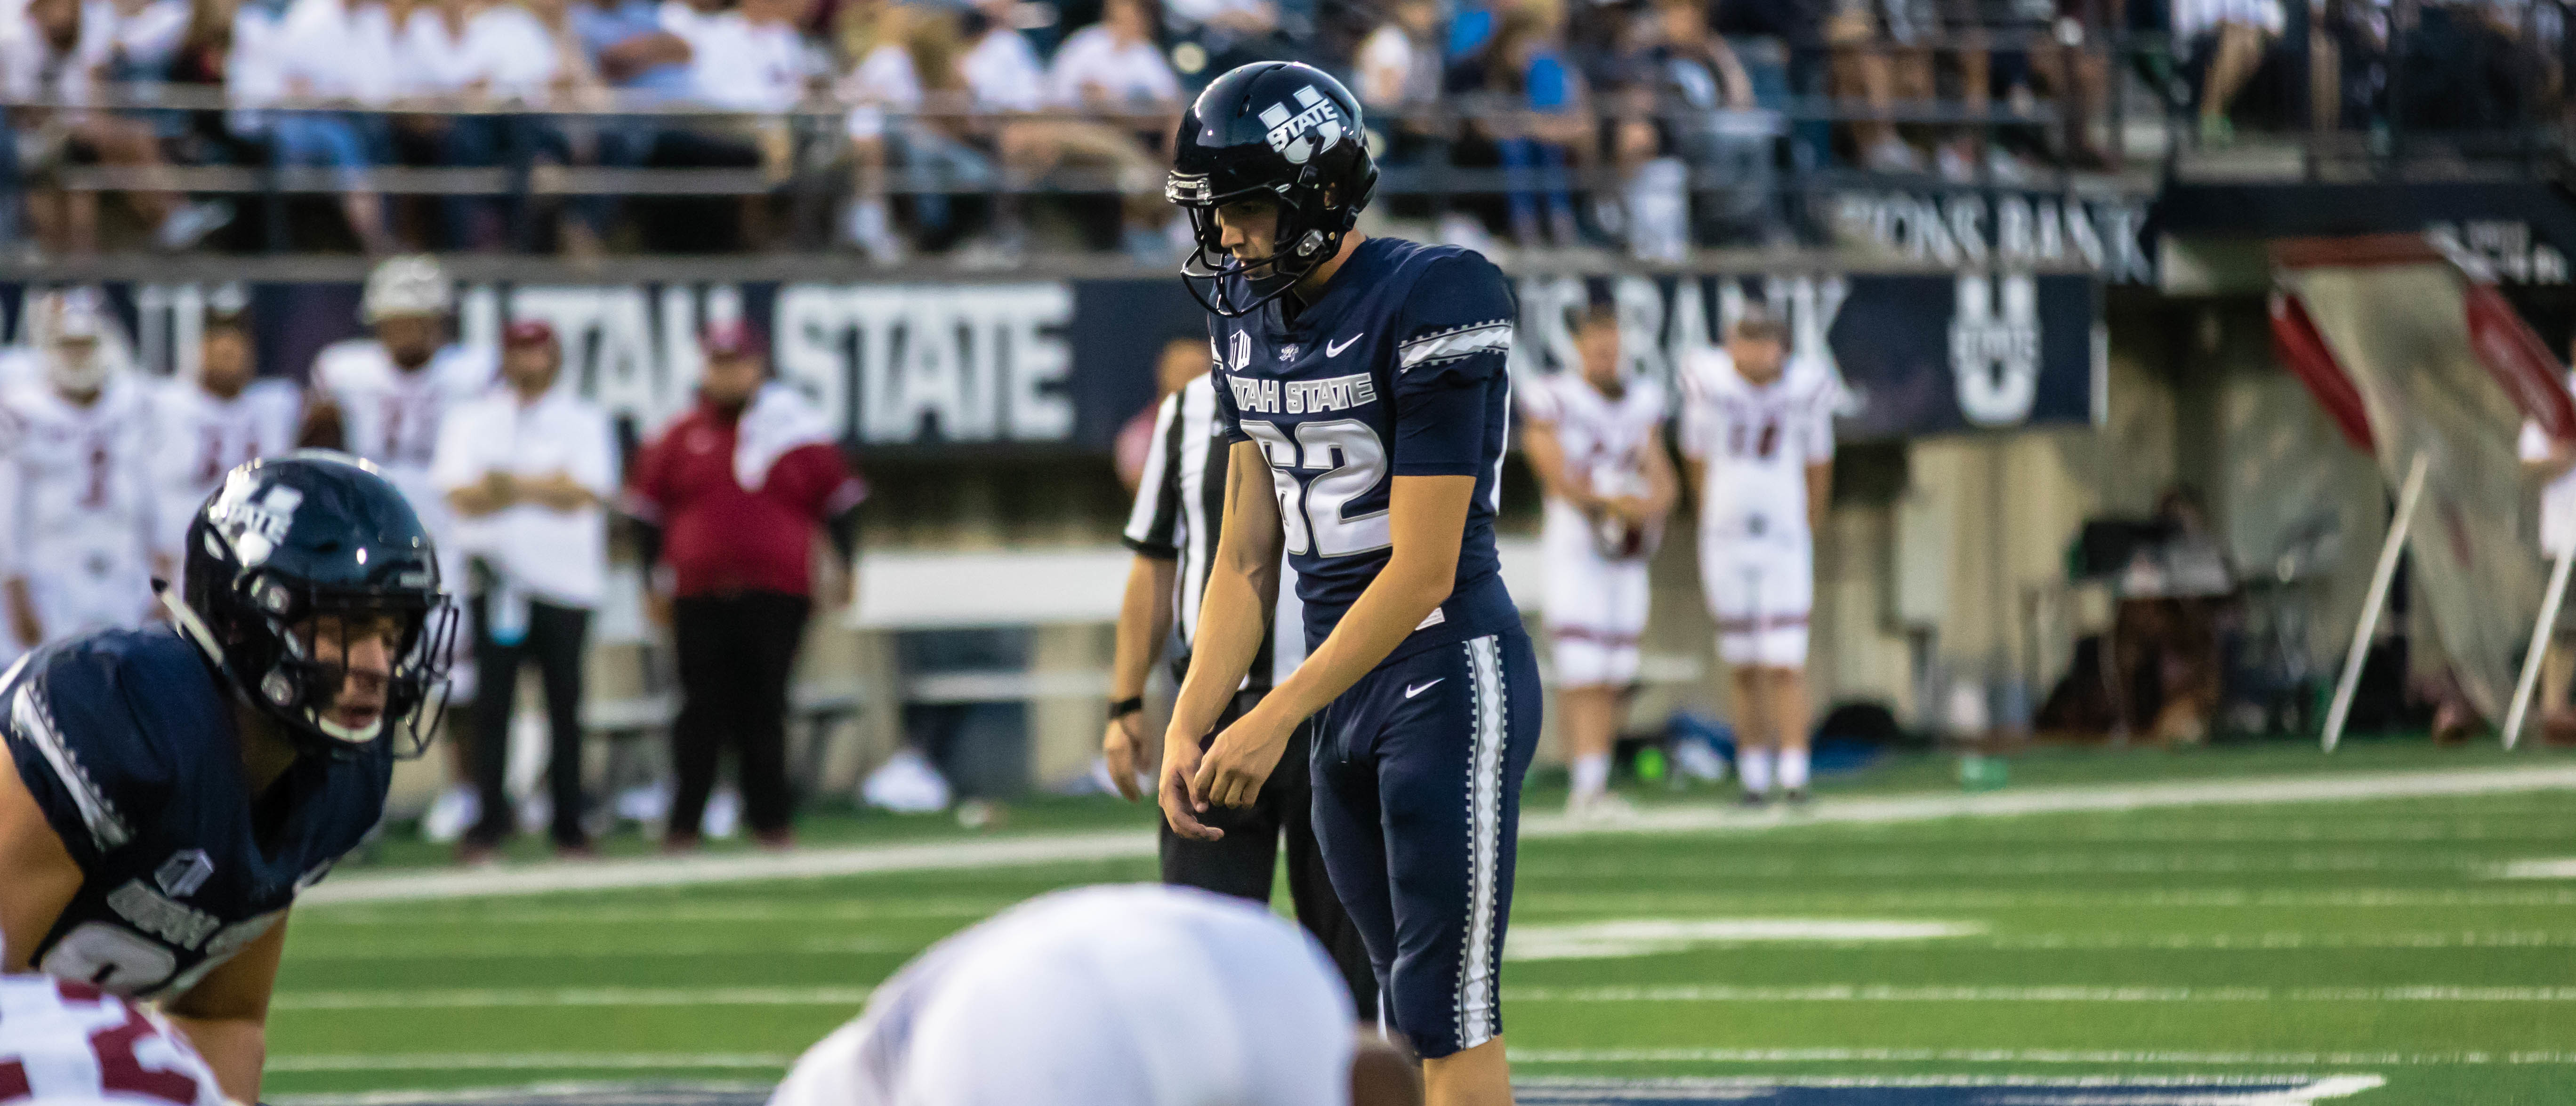 Utah State junior placekicker Dominik Eberle tied two NCAA kicking records in the Aggies' 60-13 victory over New Mexico State last Saturday night at Maverik Stadium.